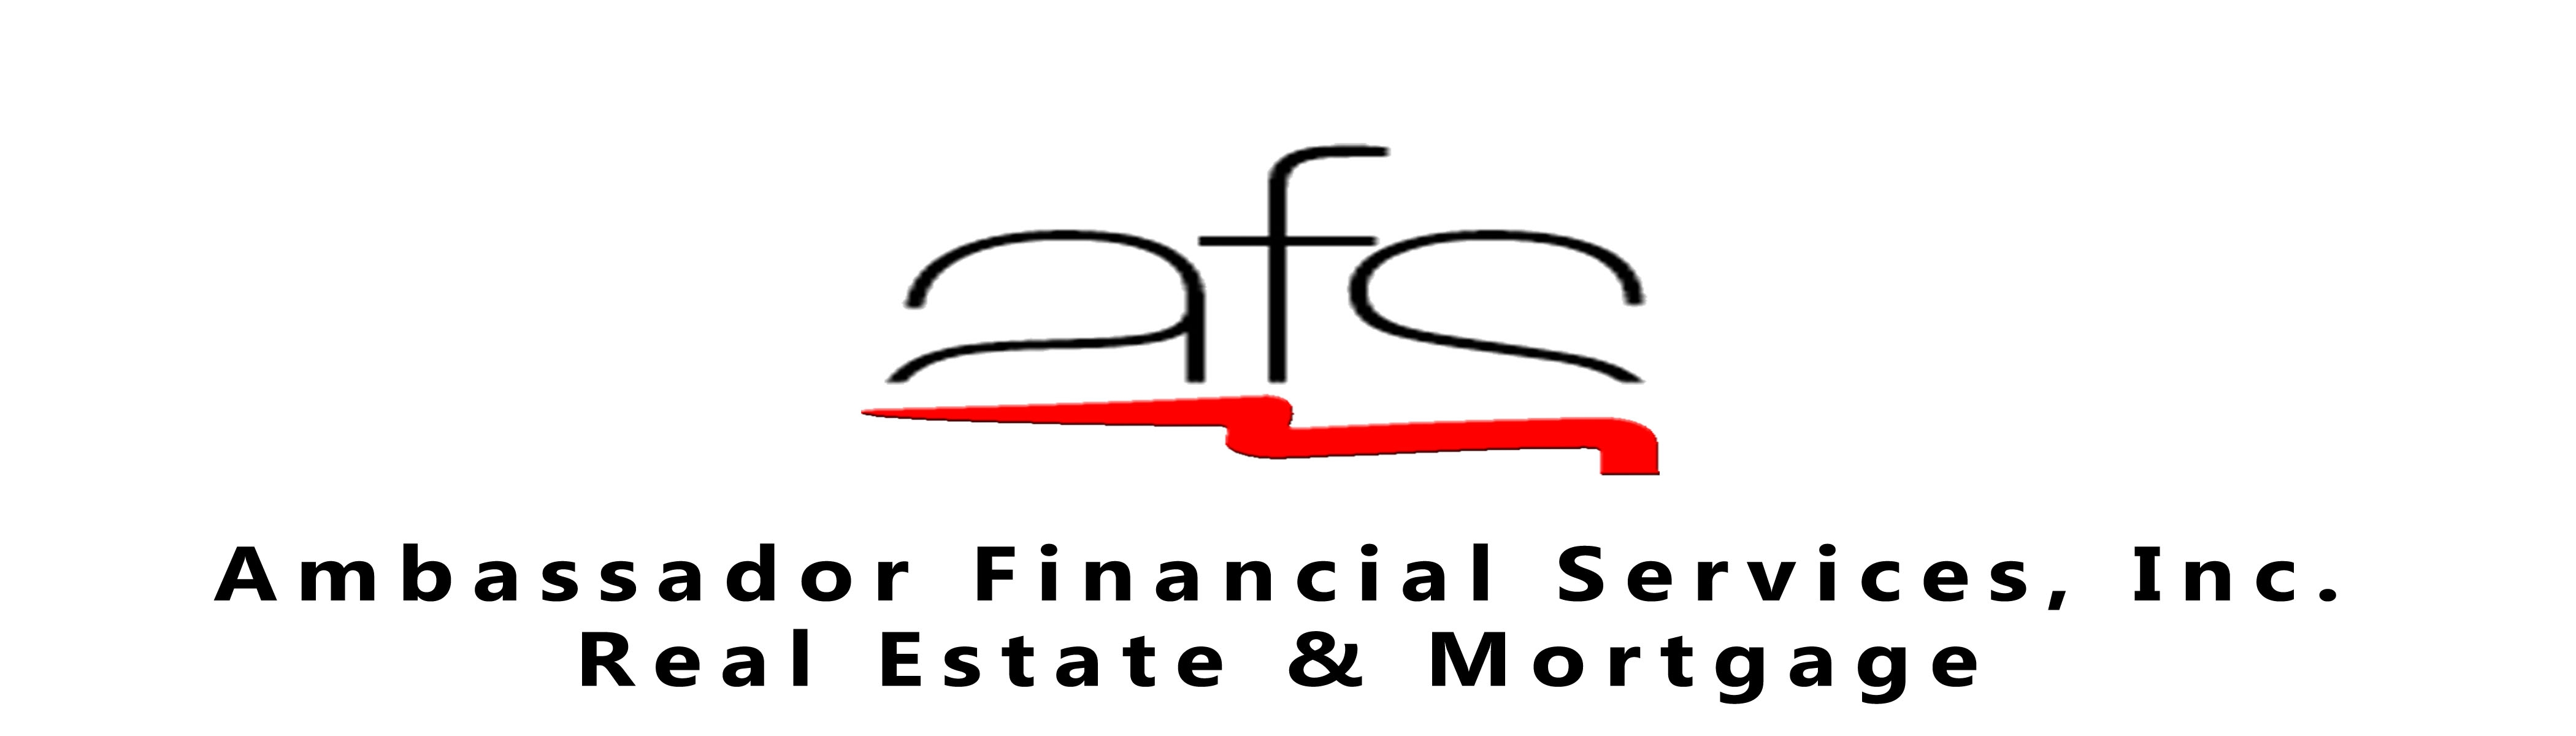 Ambassador Financial Services Inc